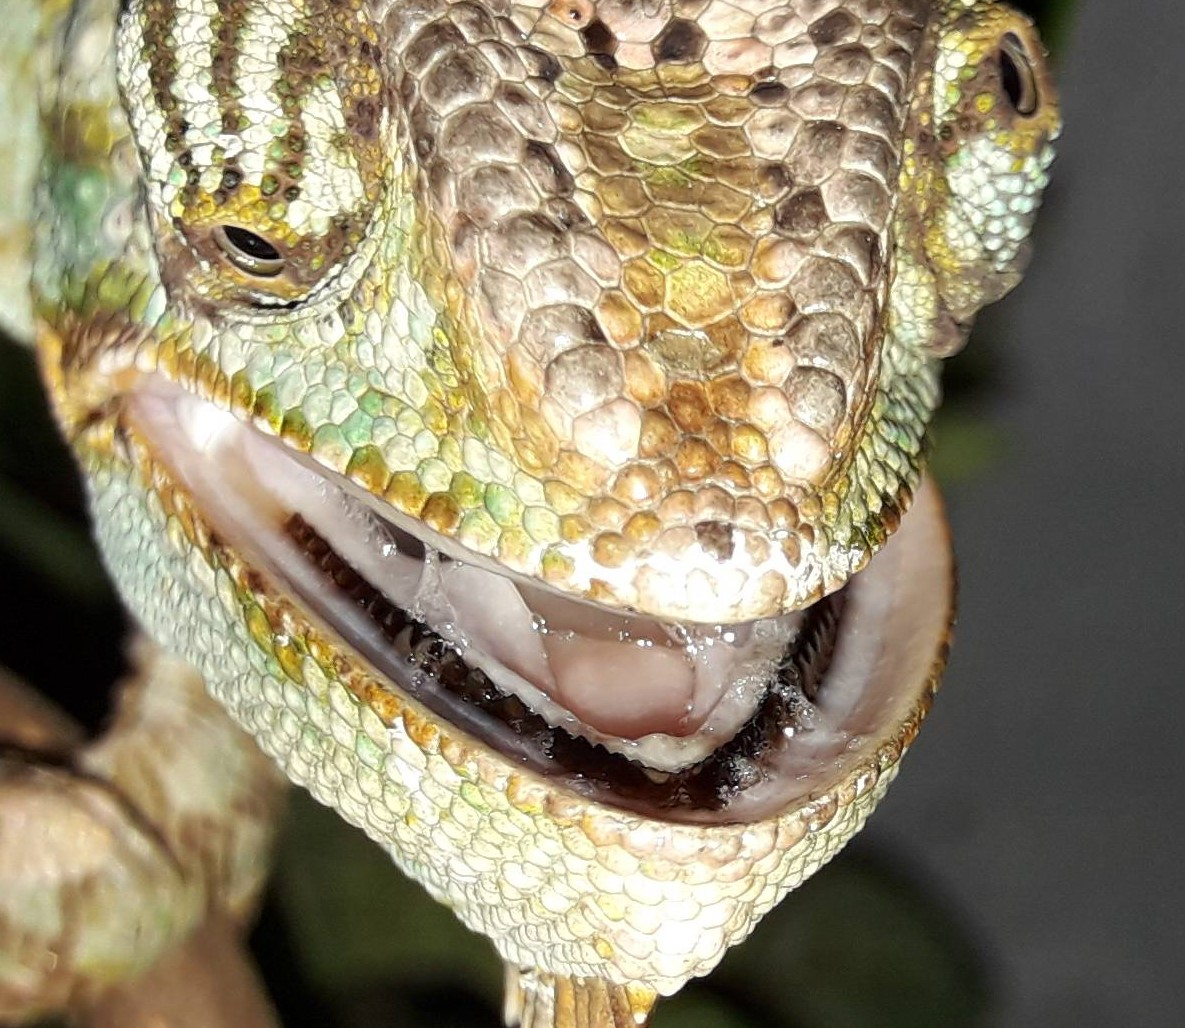 Chameleon black teeth-9cv8jpg-2-.jpg